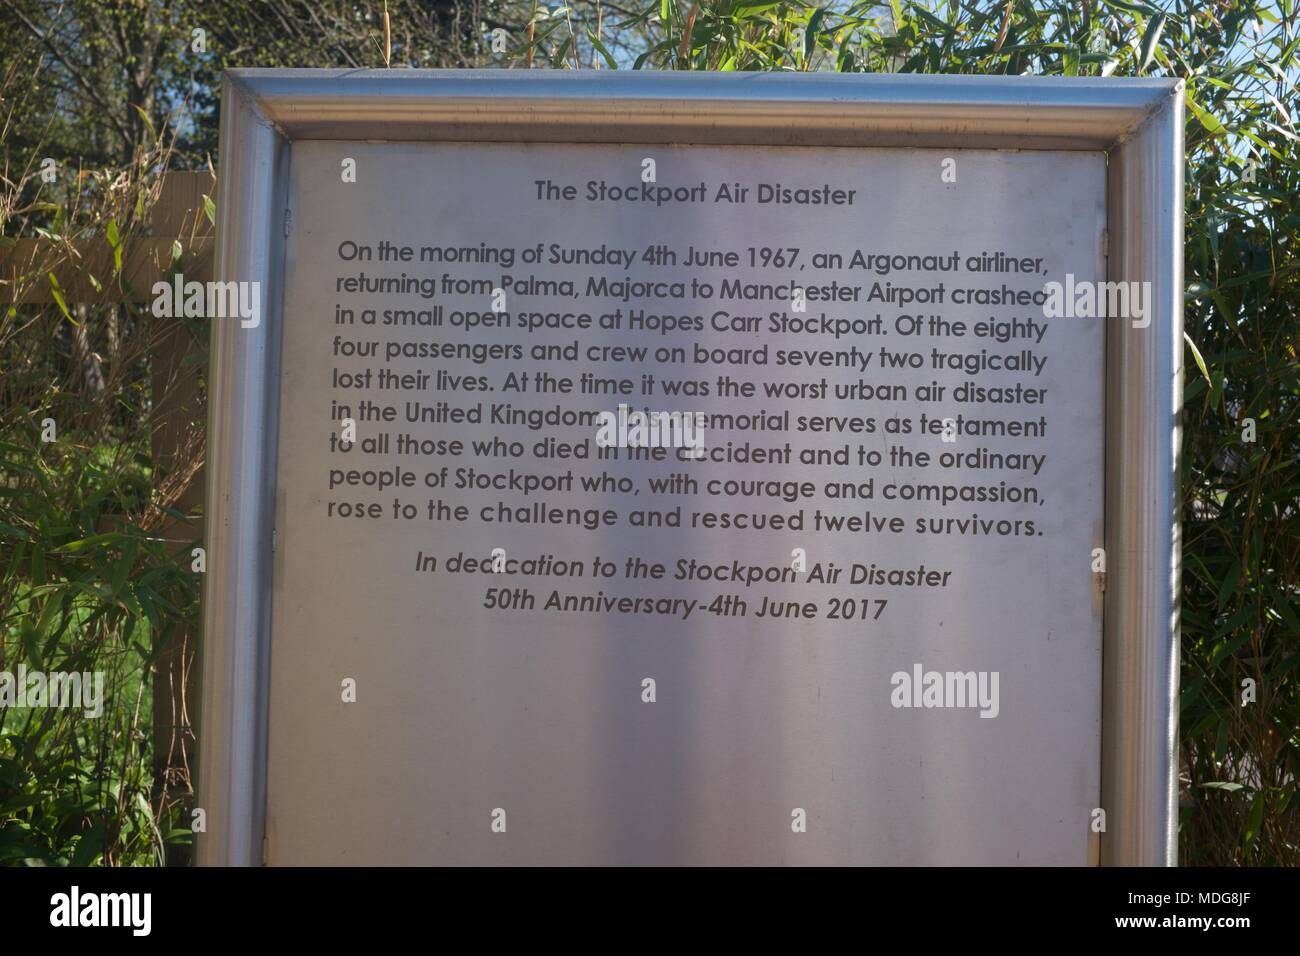 A memorial to the Stockport Air Disaster 1967 - Stock Image